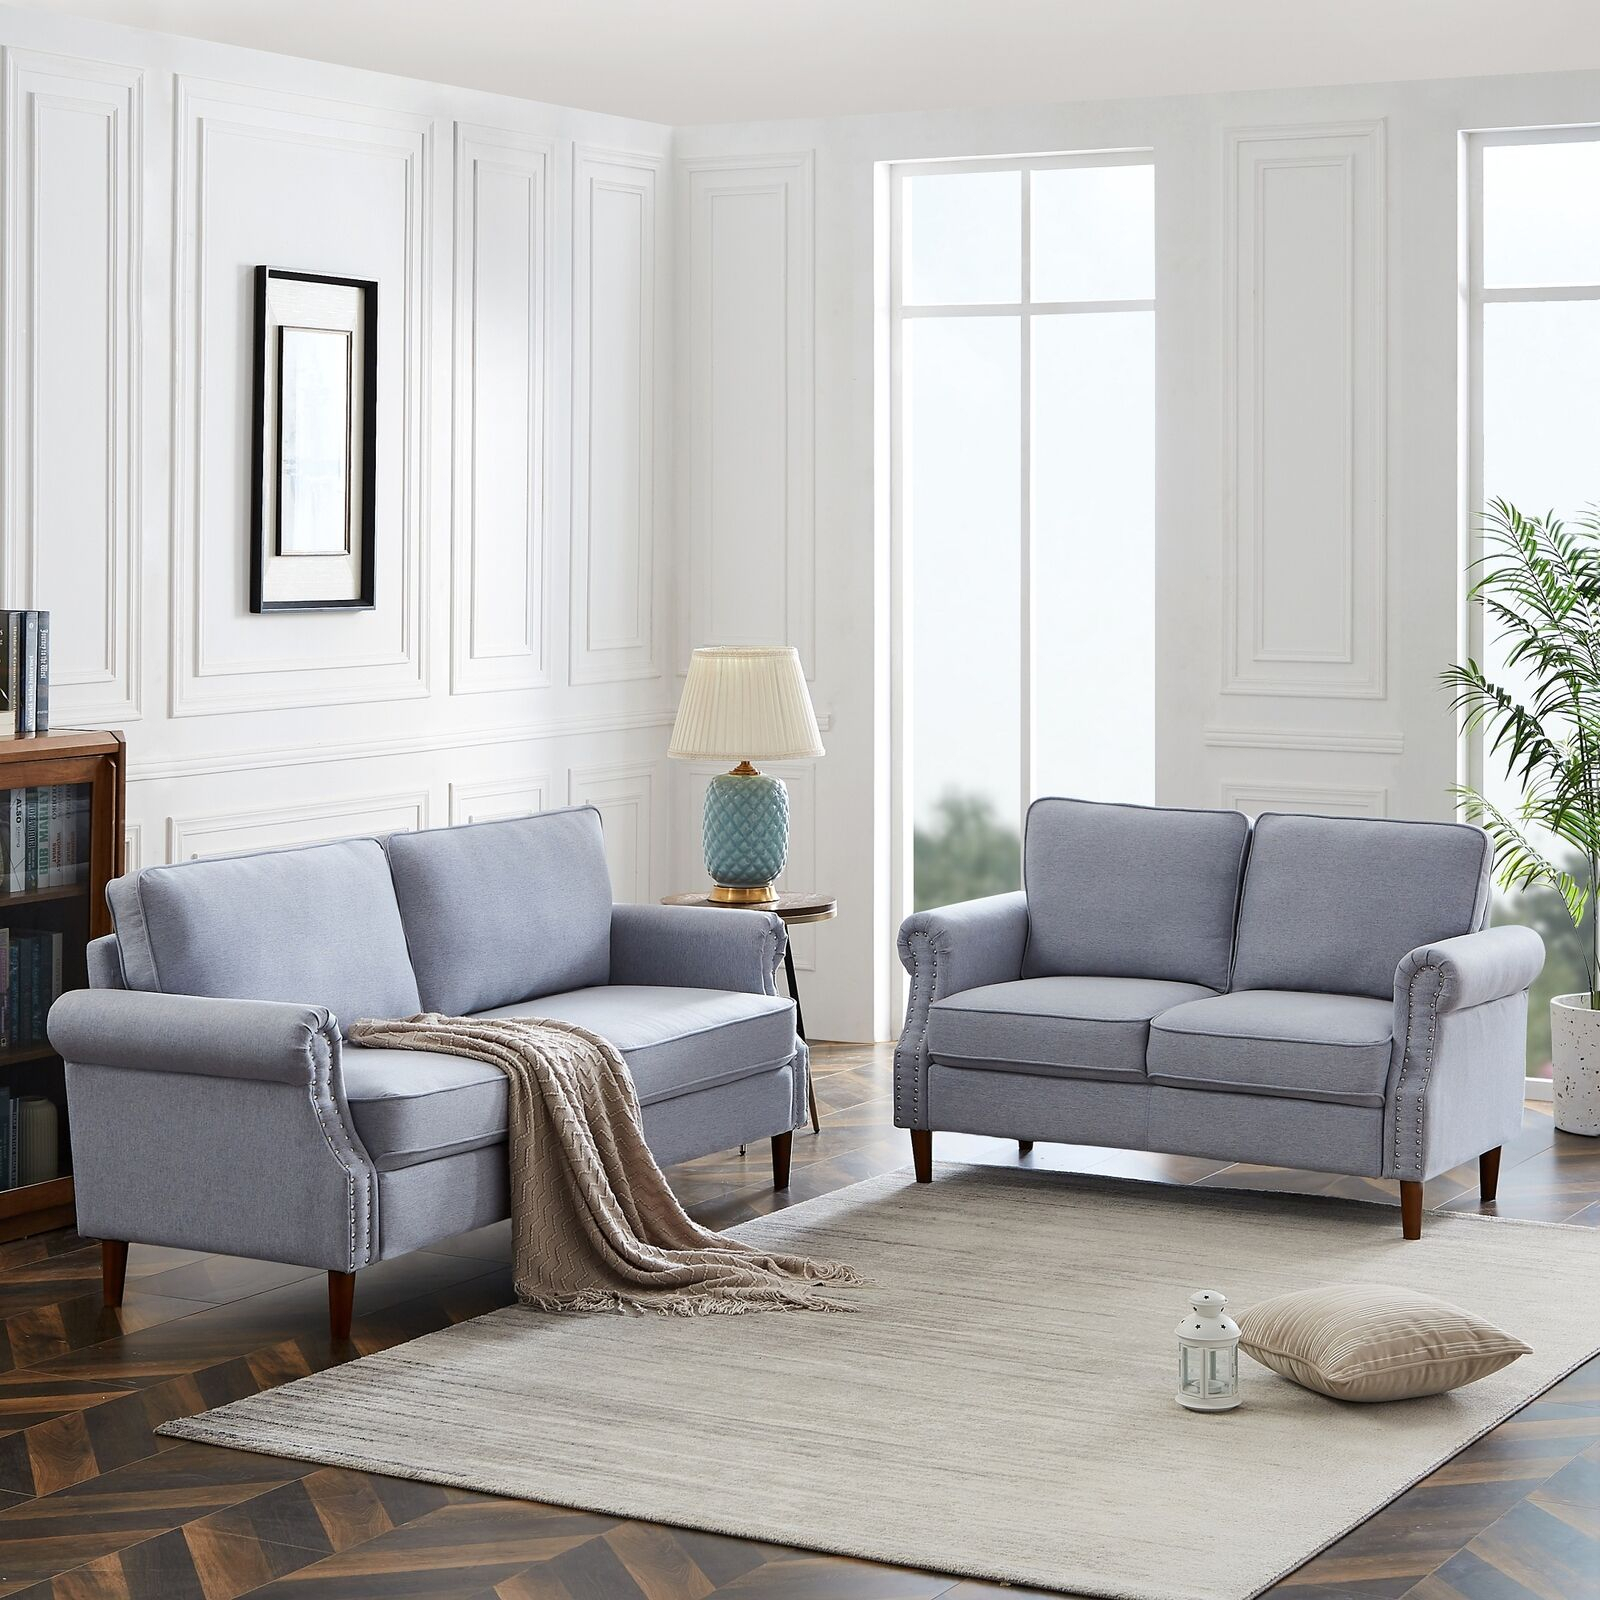 2 Piece Sofa Set Morden Style Couch Upholstered Sectional Loveseat Living Room With Myia Armchairs (View 13 of 15)